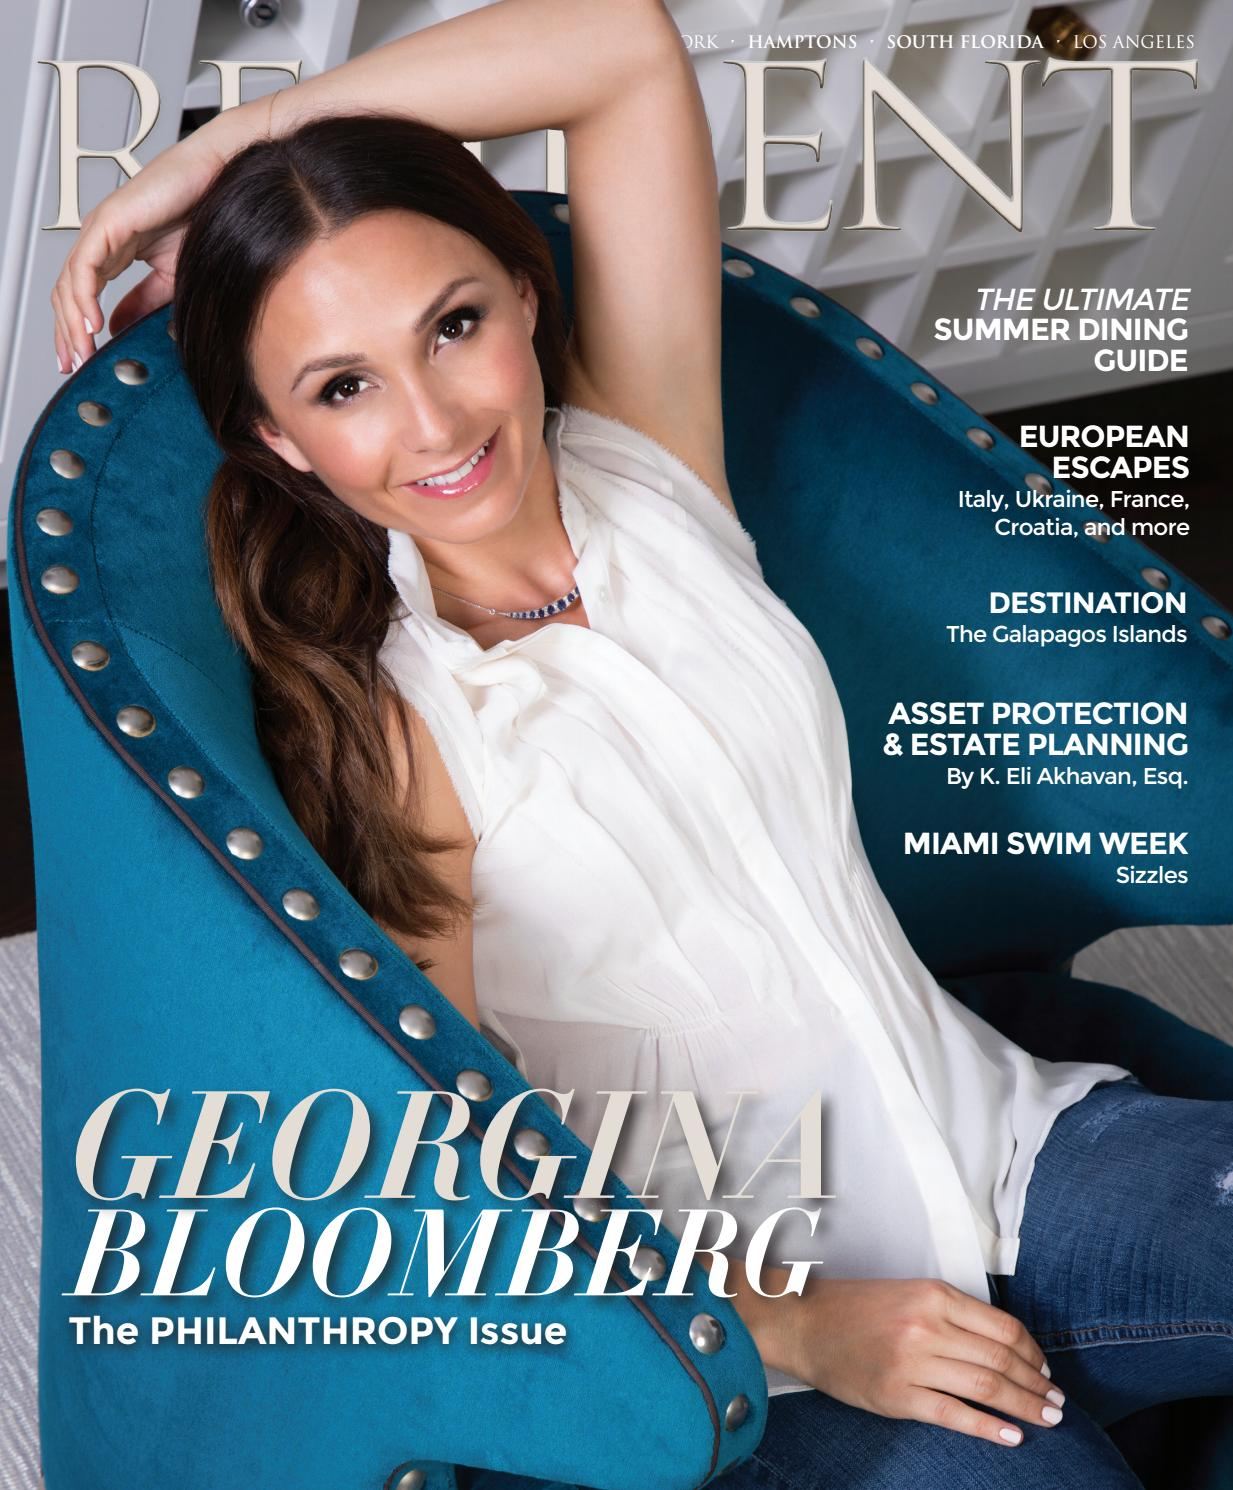 ls mag pimpandhost.com1 $$) Resident Magazine August 2017 Issue - Georgina Bloomberg by Resident  Magazine - issuu